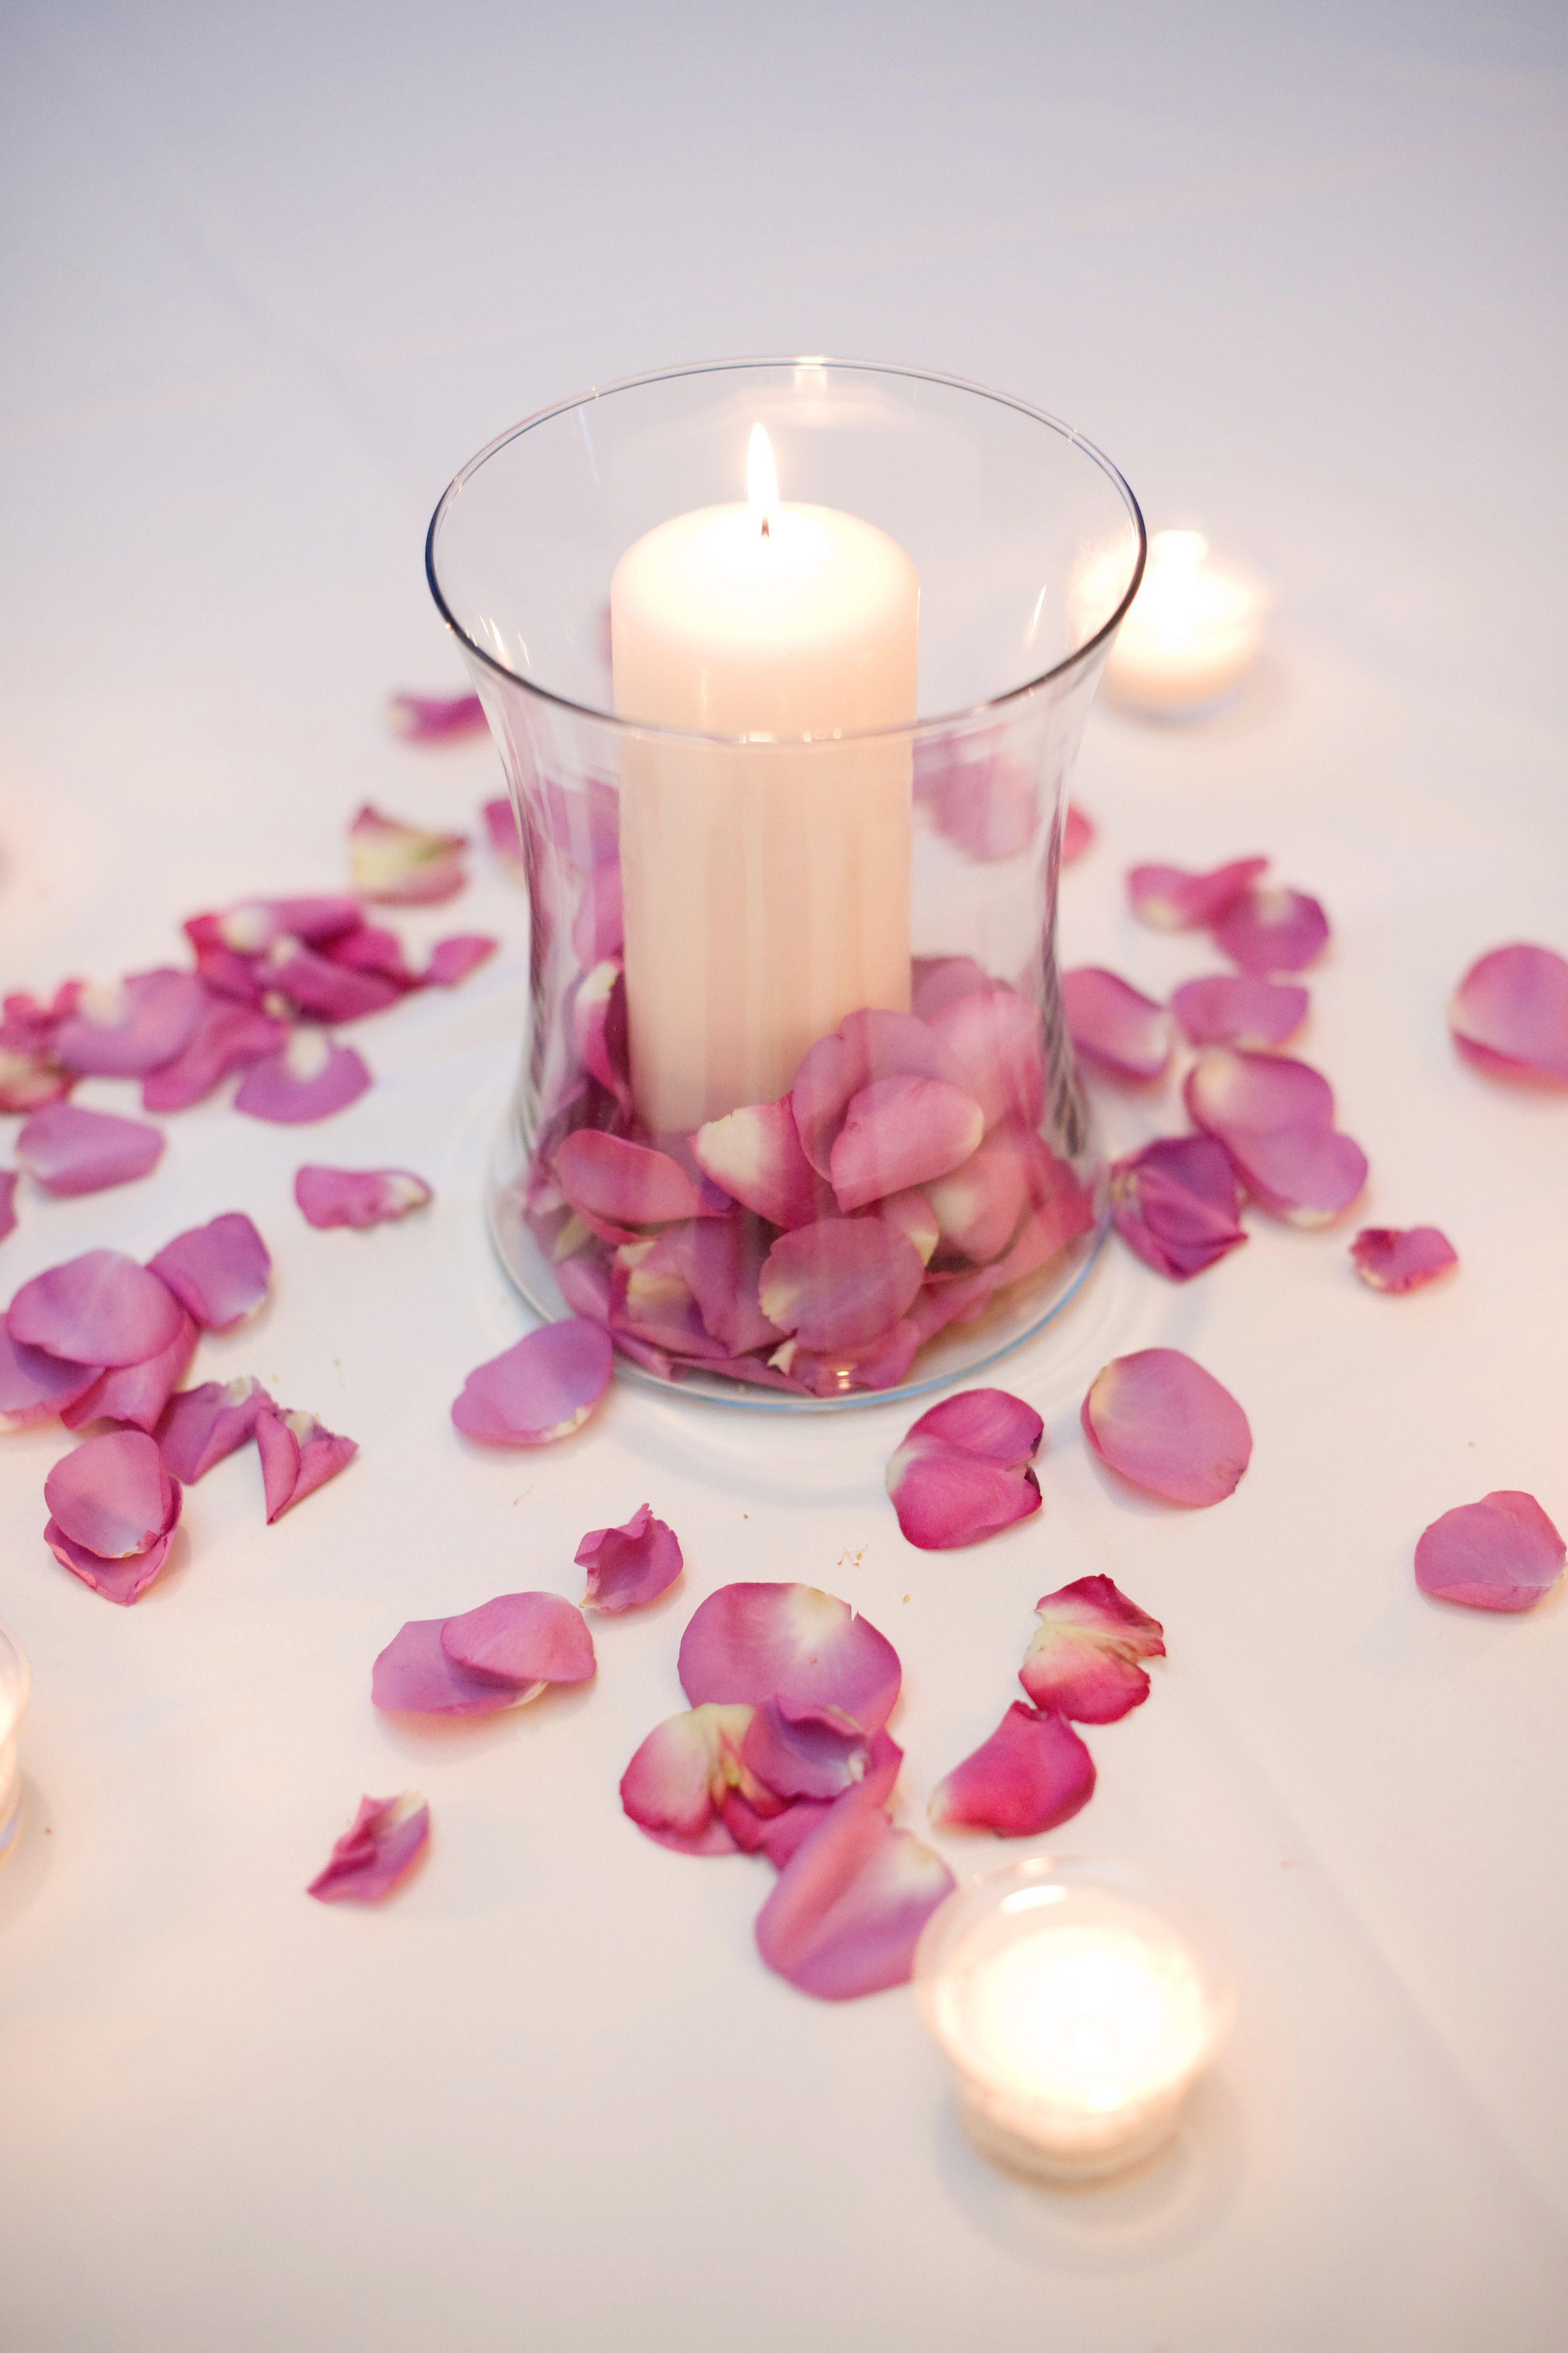 guest table centerpiece with pillar candle  votive candles  and cool water rose petals scattered